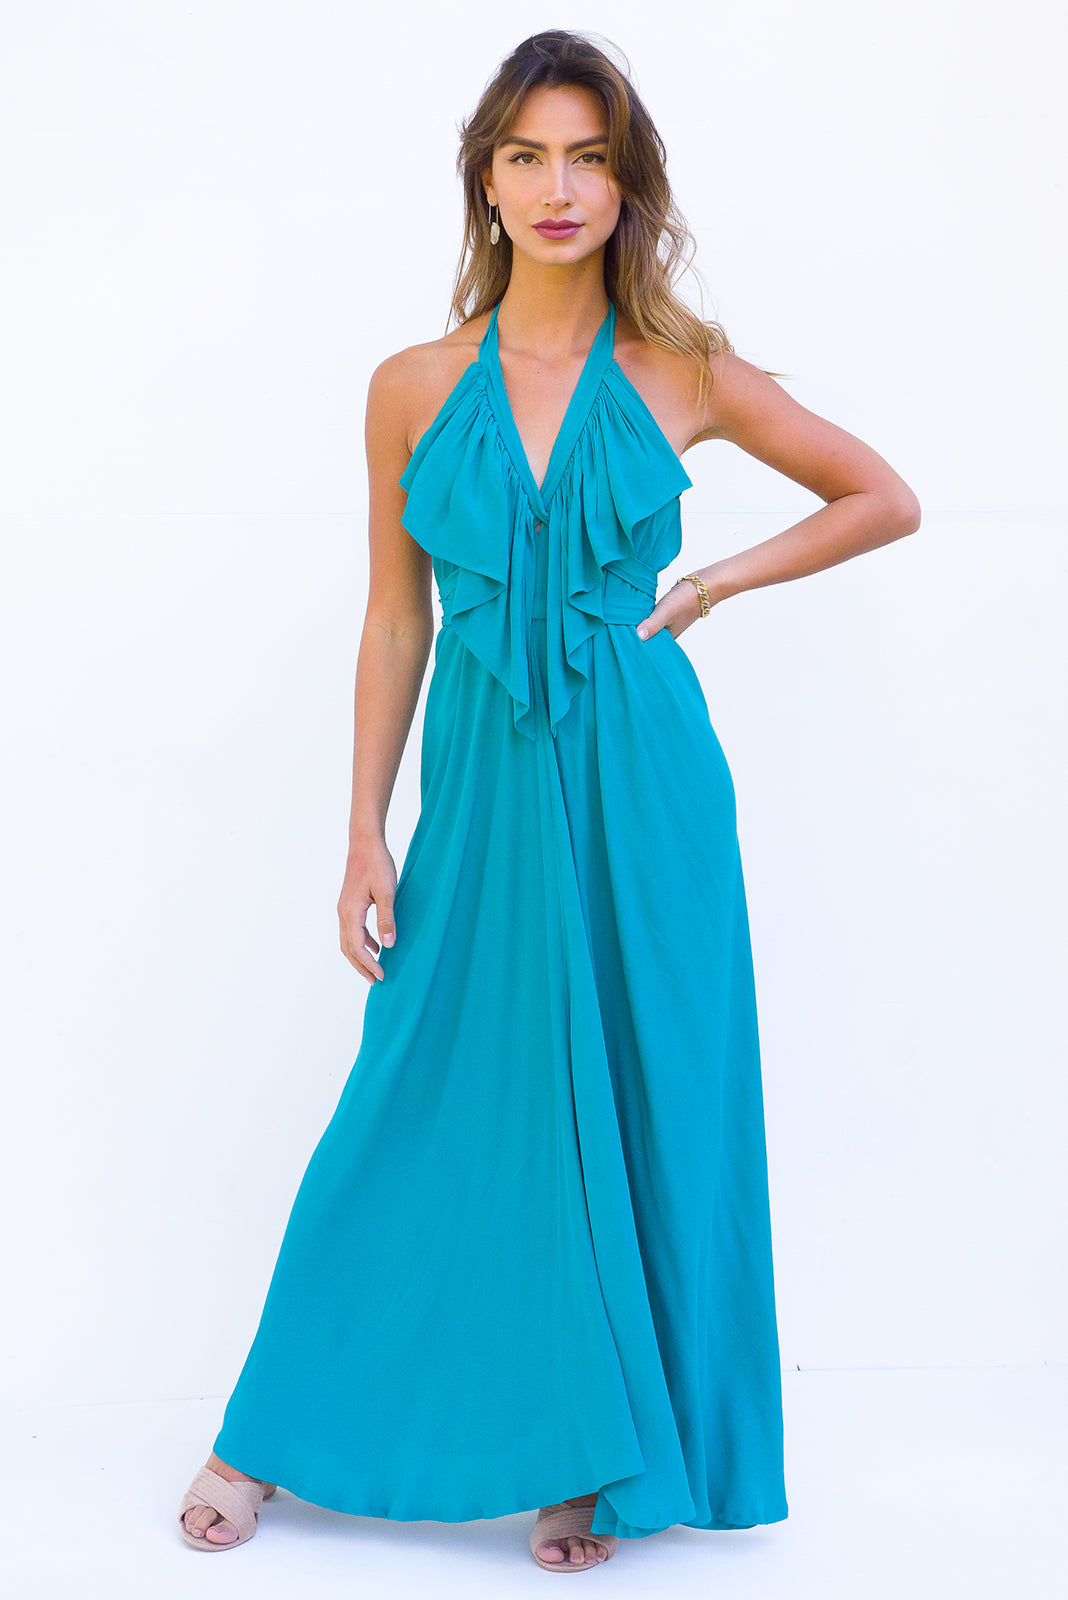 Belle Starr Maxi Dress Backless Halter formal dress in Emerald Green